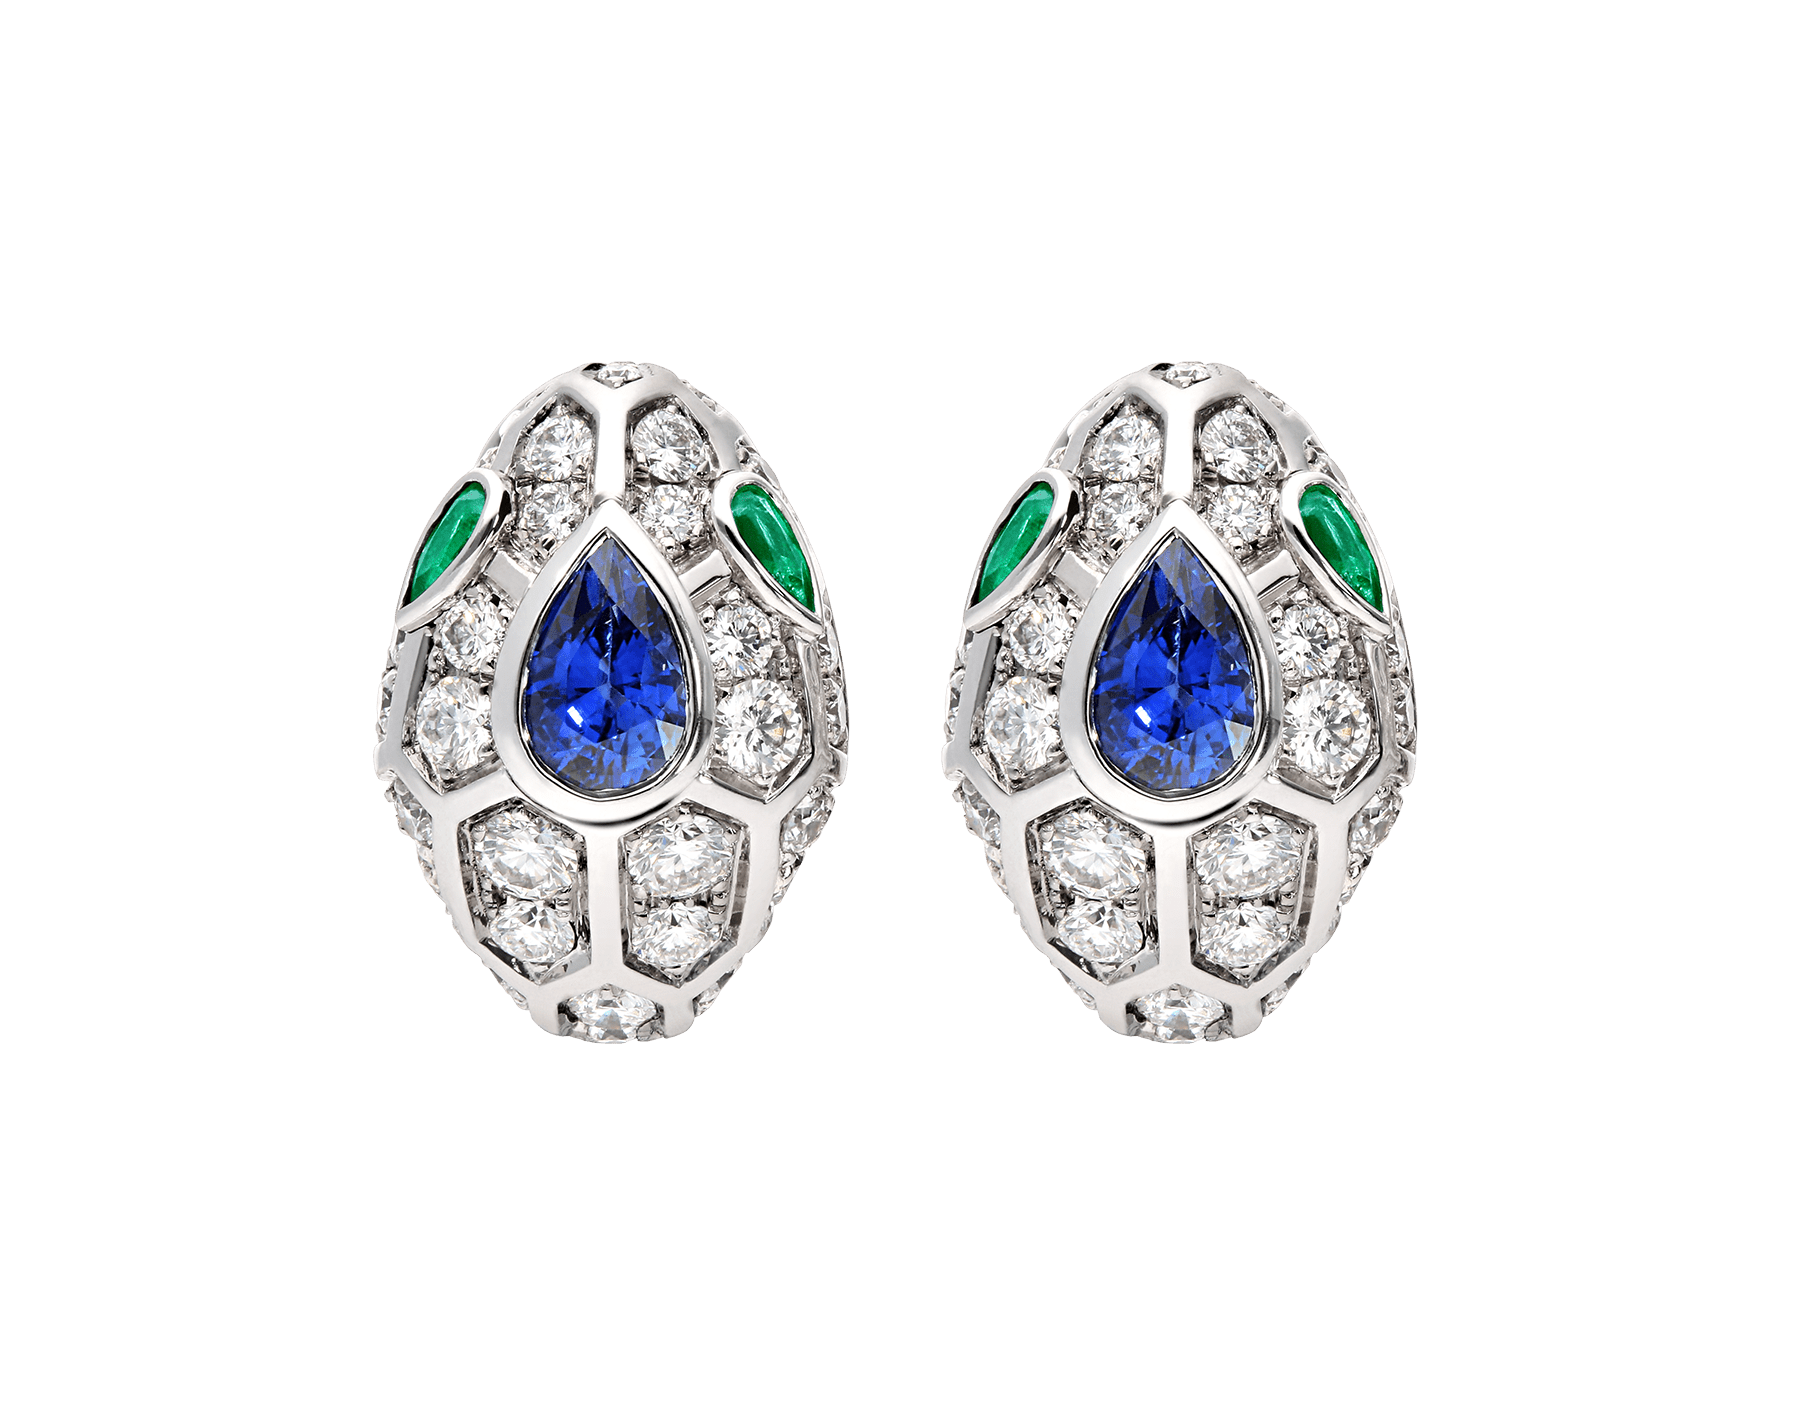 Serpenti 18 kt white gold earrings, set with a blue sapphire on the head, emerald eyes and pavé diamonds. 355355 image 1